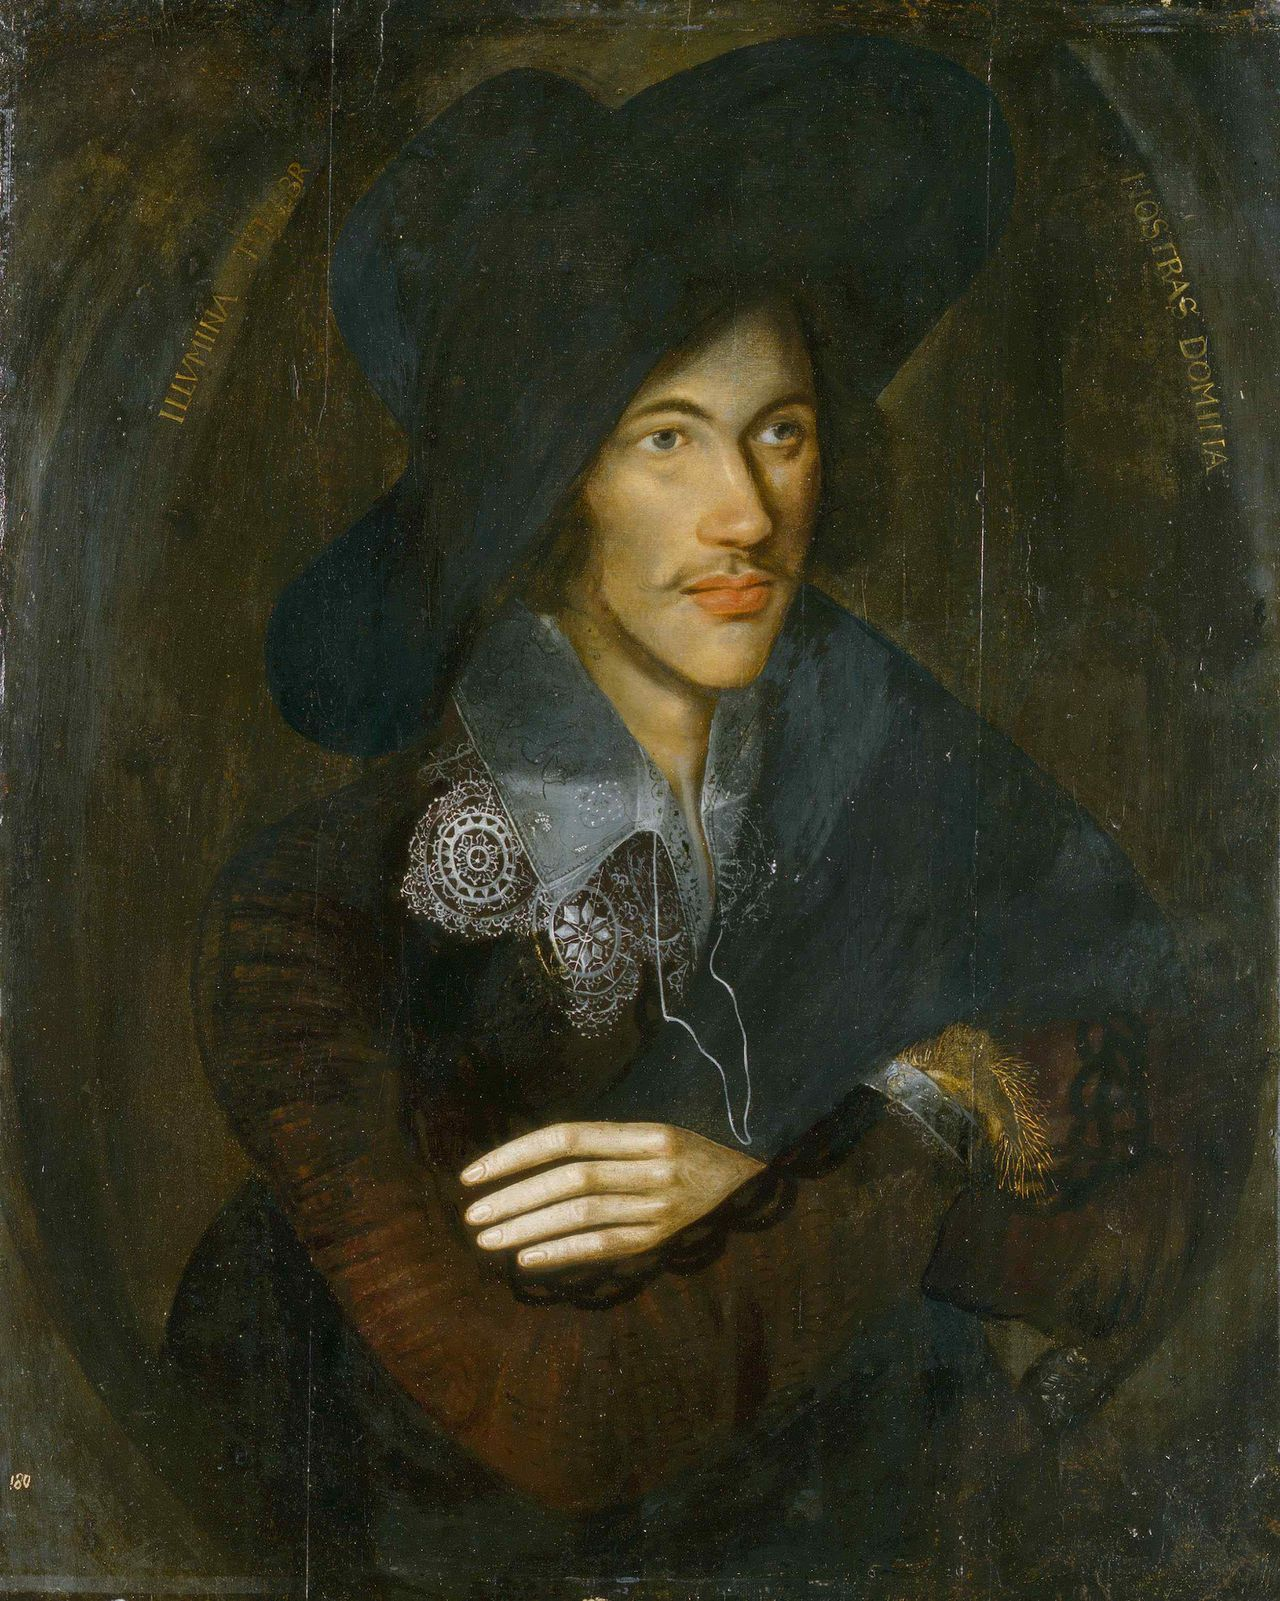 A handout photograph released on January 27, 2006 shows a unique picture by an unknown artist of iconic 16th century English poet John Donne. Britain's National Portrait Gallery launched a public appeal for 1.6 million pounds ($2.85 million) on Friday to buy the oil on panel portrait. REUTERS/National Portrait Galley/Handout